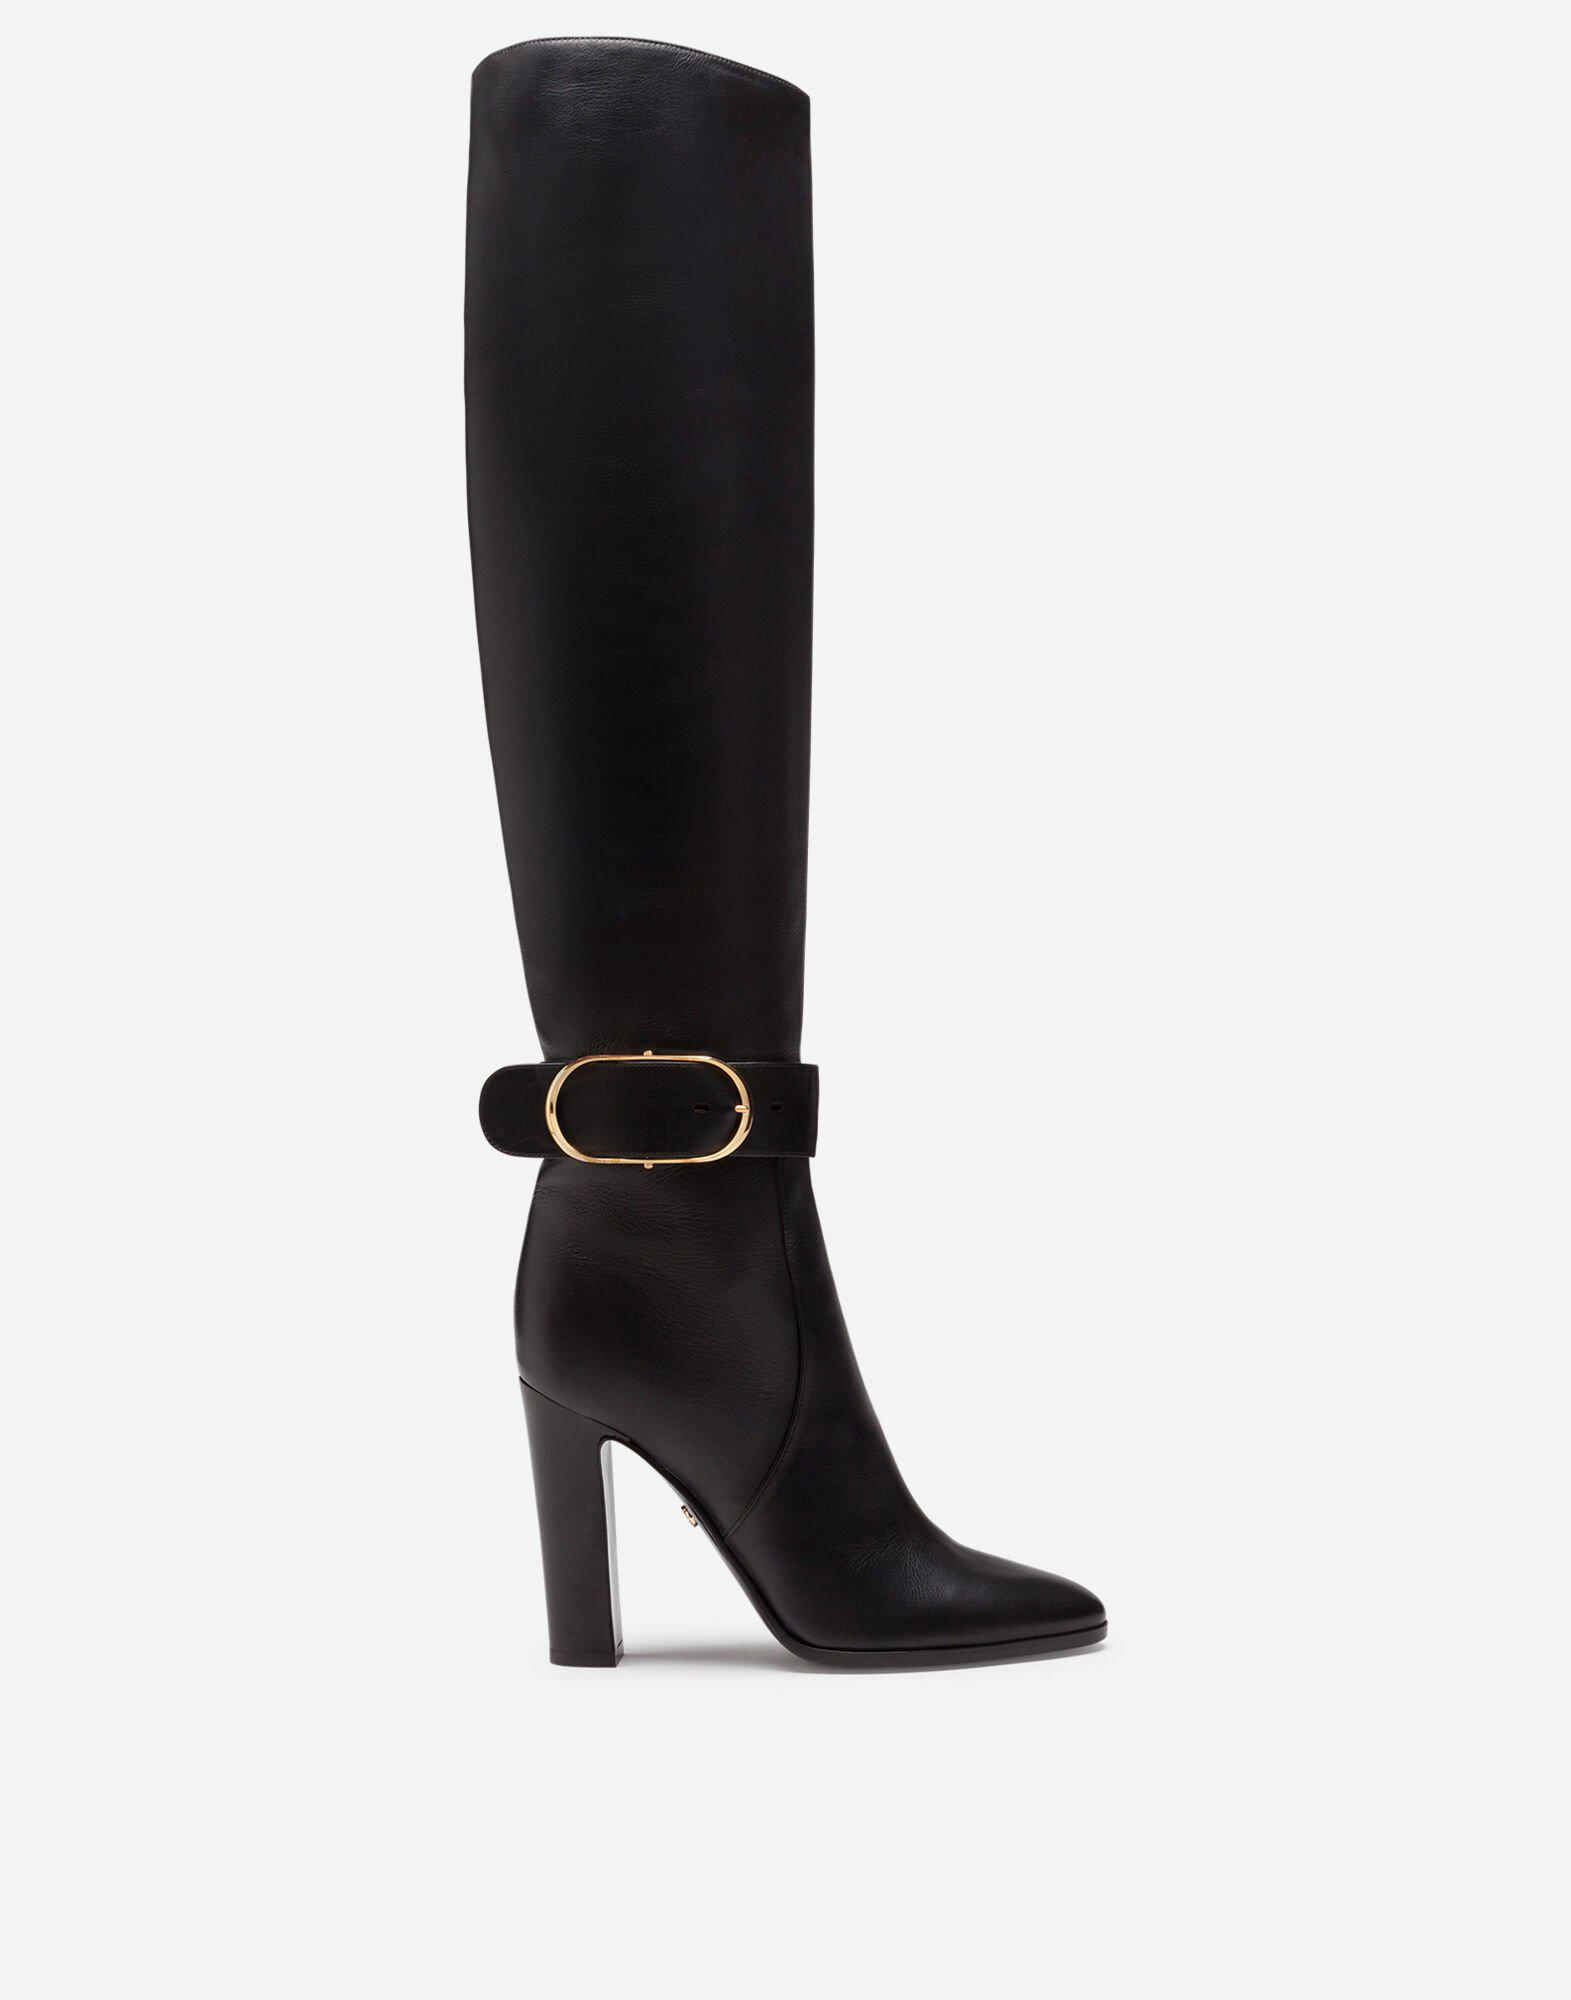 Boots in foulard calfskin with decorative buckle